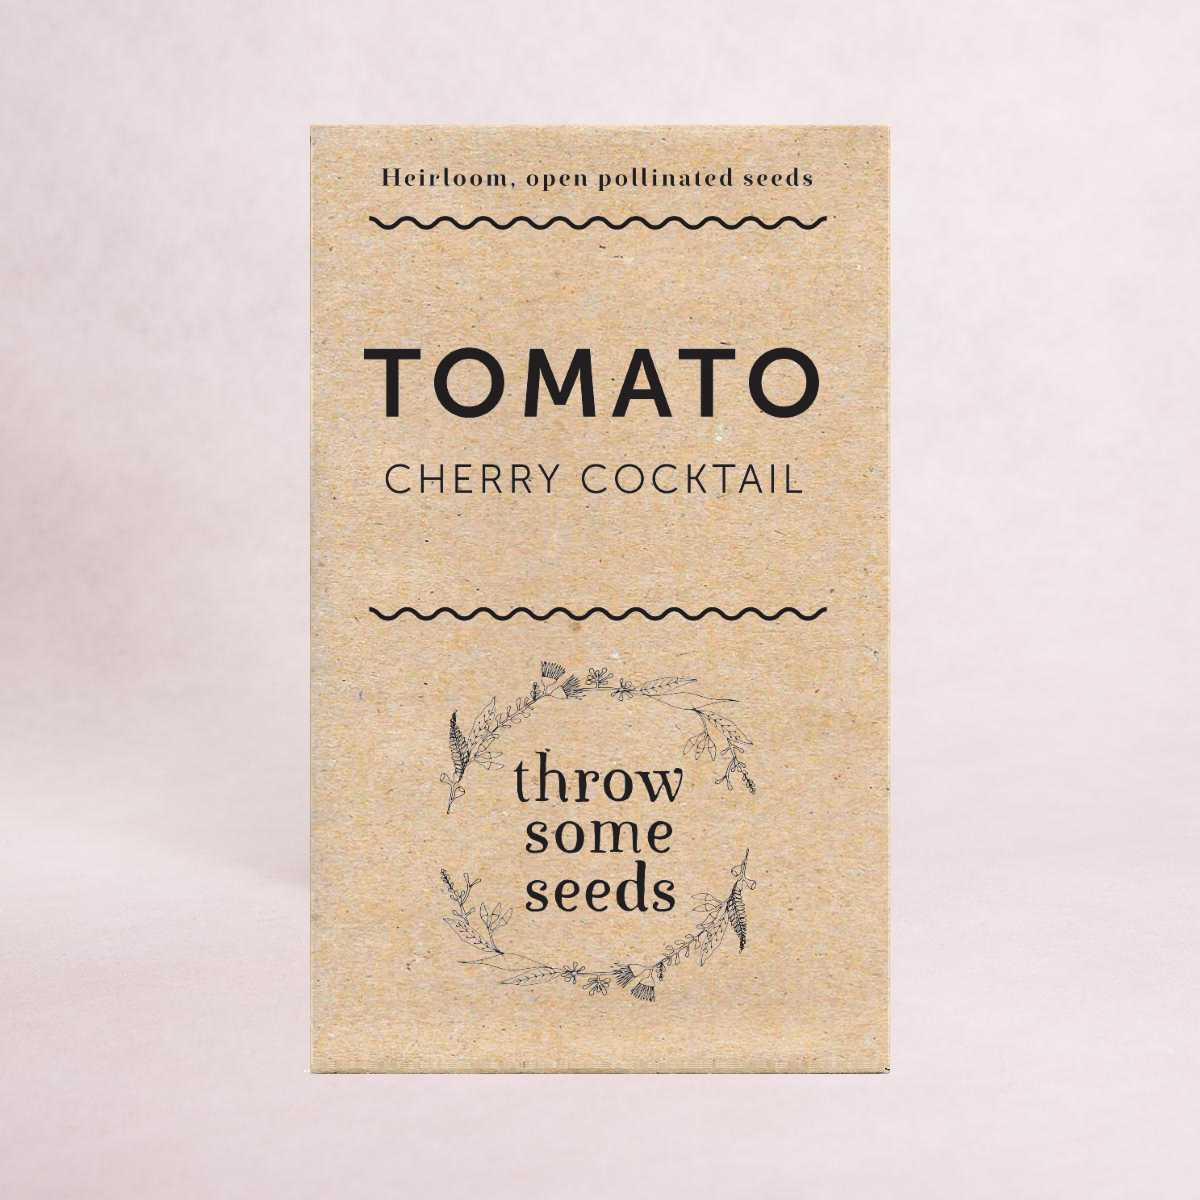 Tomato (Cherry Cocktail) Seeds - Seeds - Throw Some Seeds - Nature Inspired Gifts for the Home & Garden